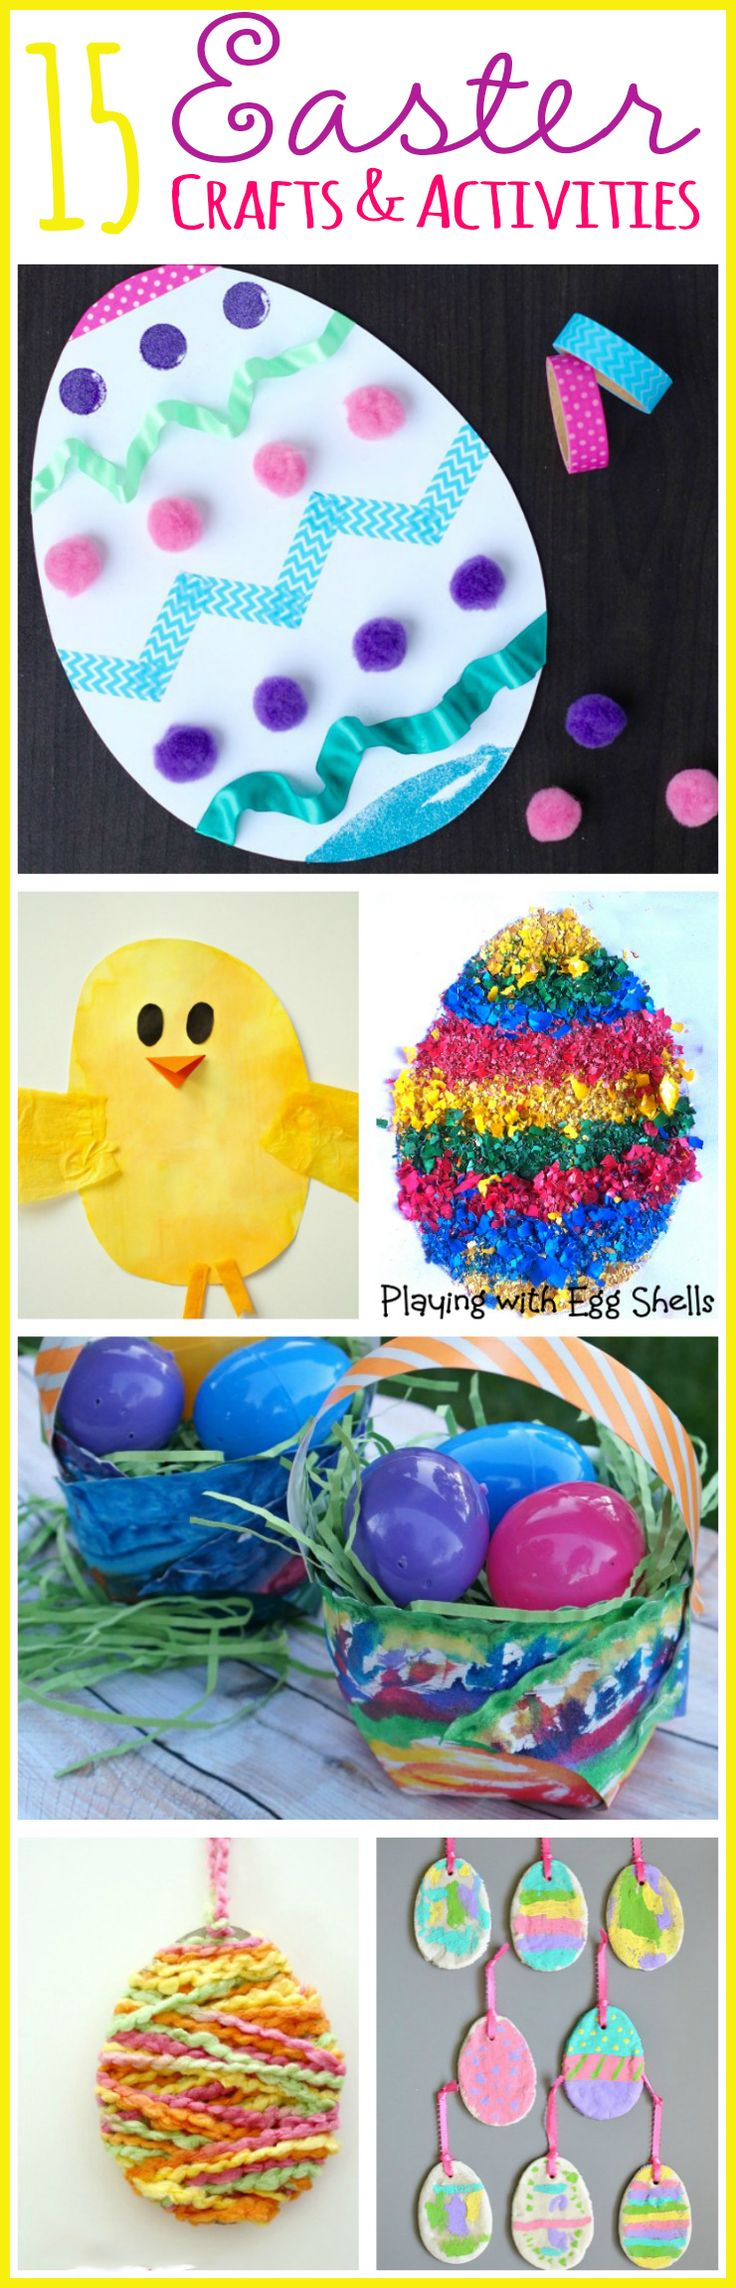 15 Fun & Easy Easter Crafts & Activities